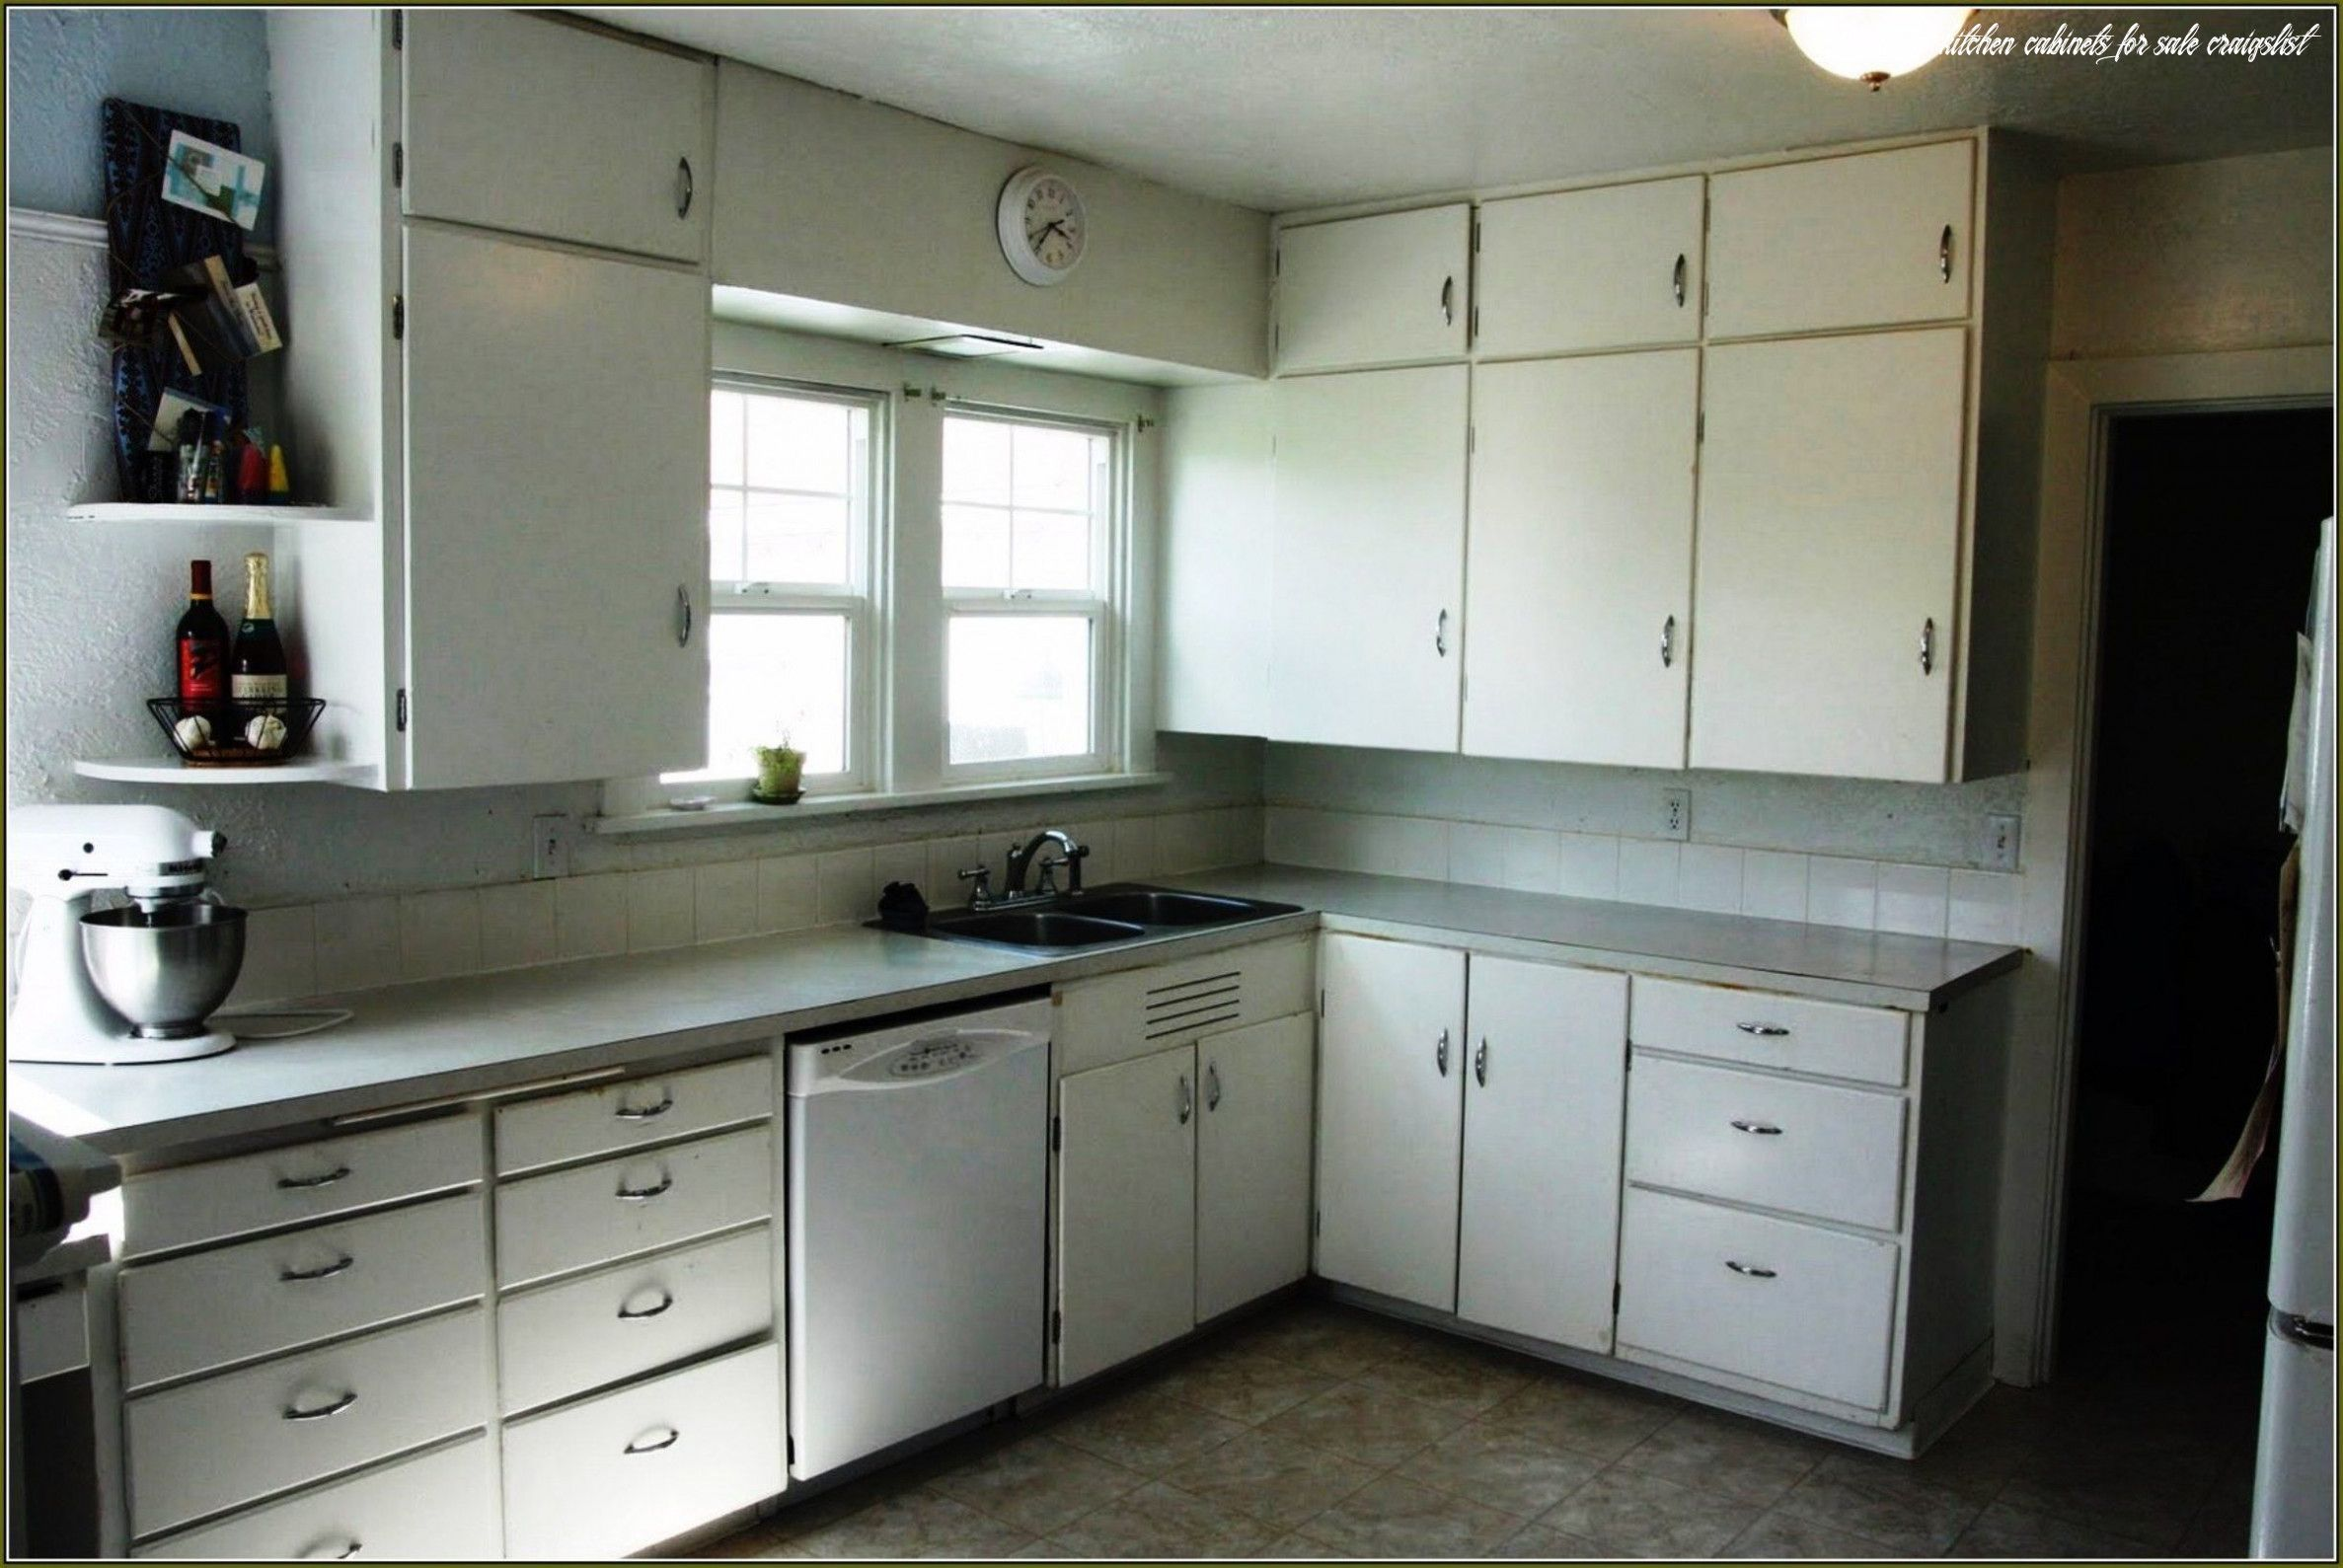 5 Great Used Kitchen Cabinets For Sale Craigslist Ideas That You Can Share With Your Friends In 2020 Cabinets For Sale Cheap Kitchen Cabinets Kitchen Set Cabinet